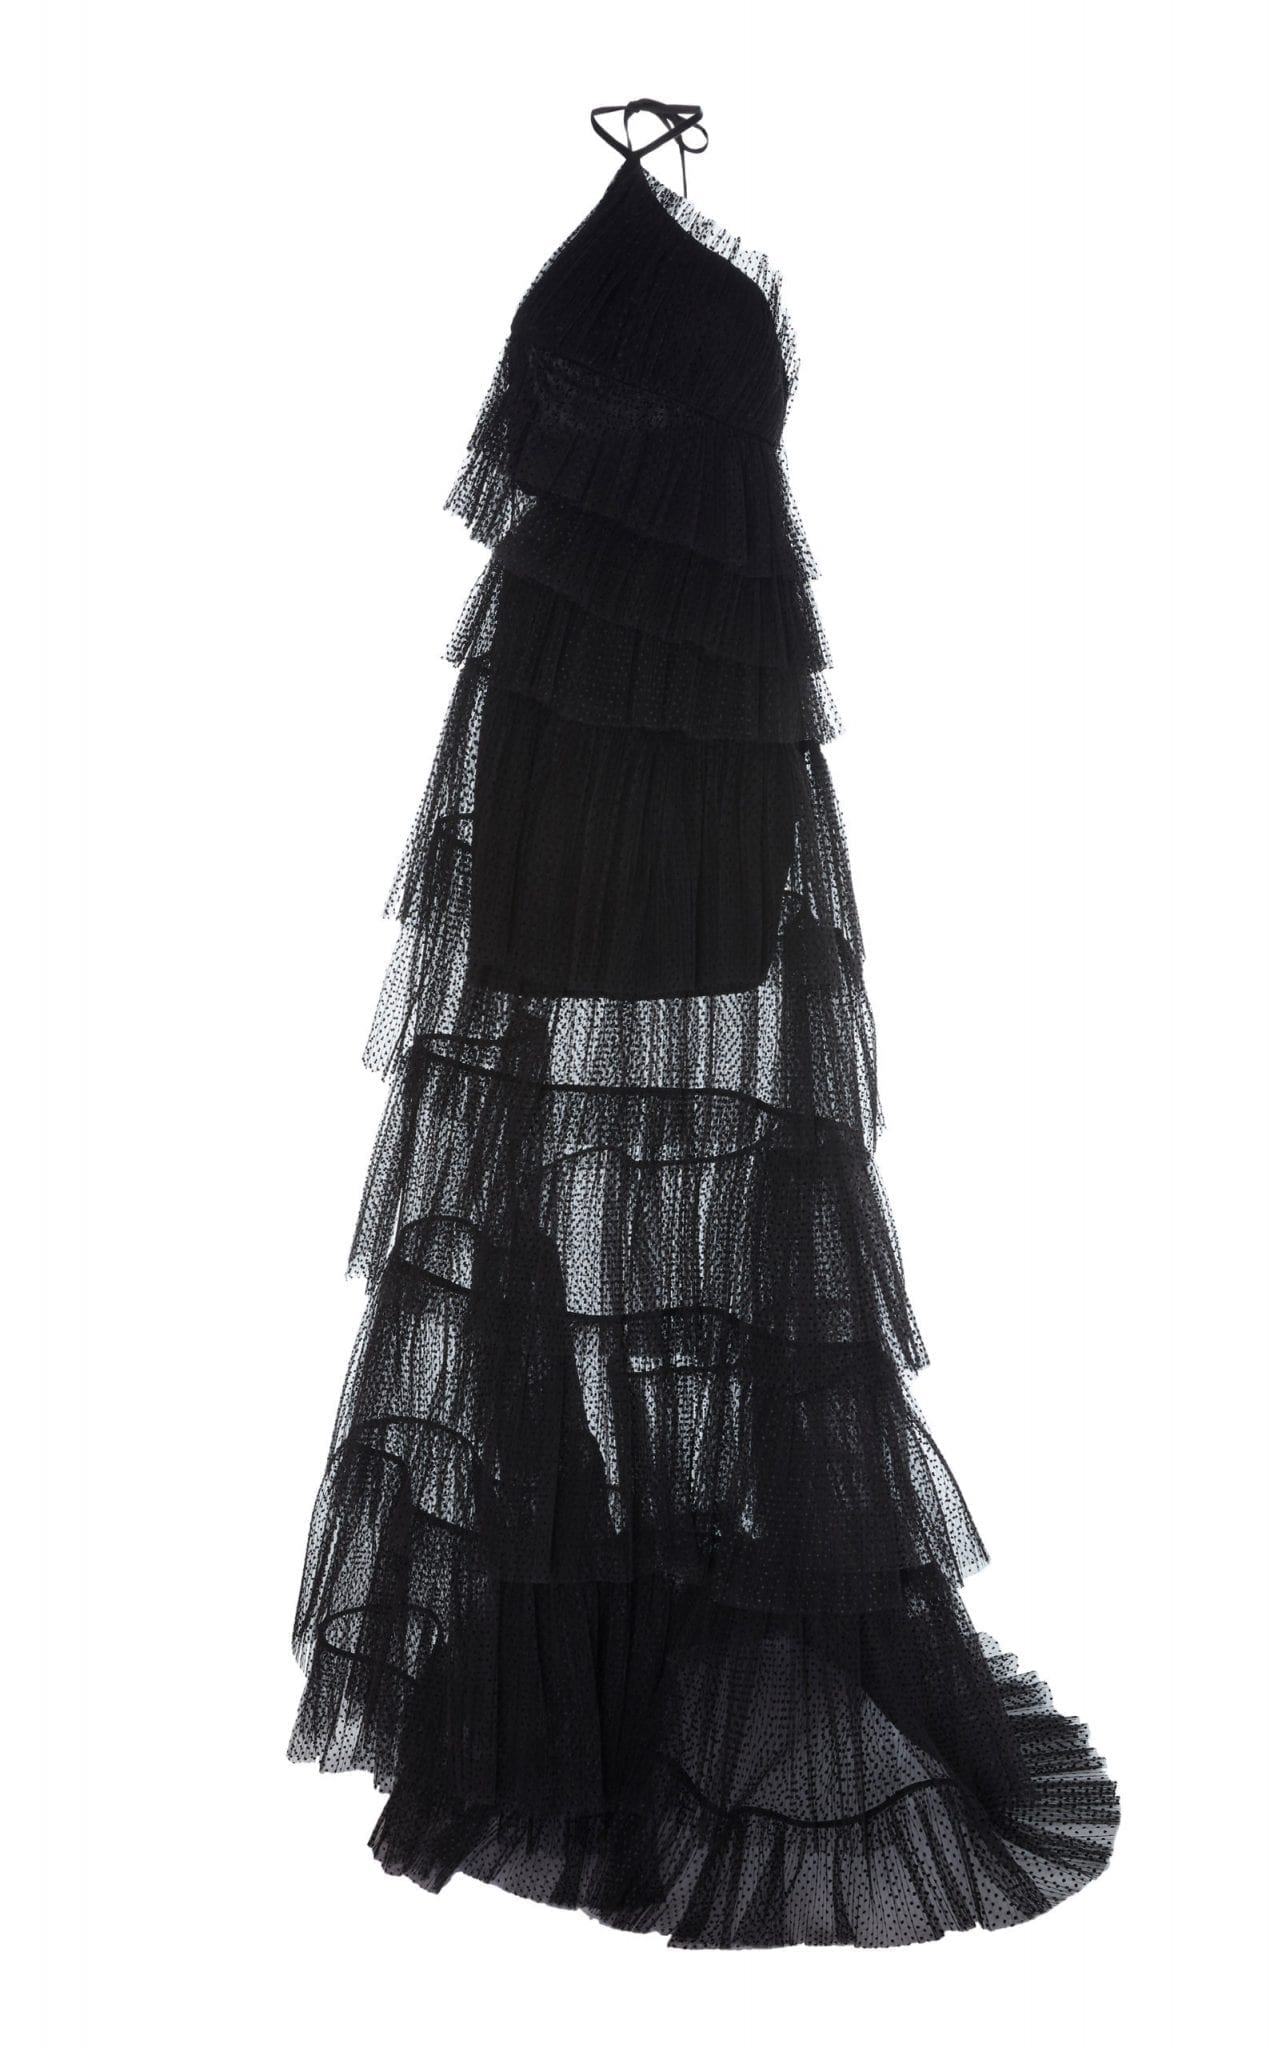 ALEXIS Justina Tiered Tulle Halterneck Gown